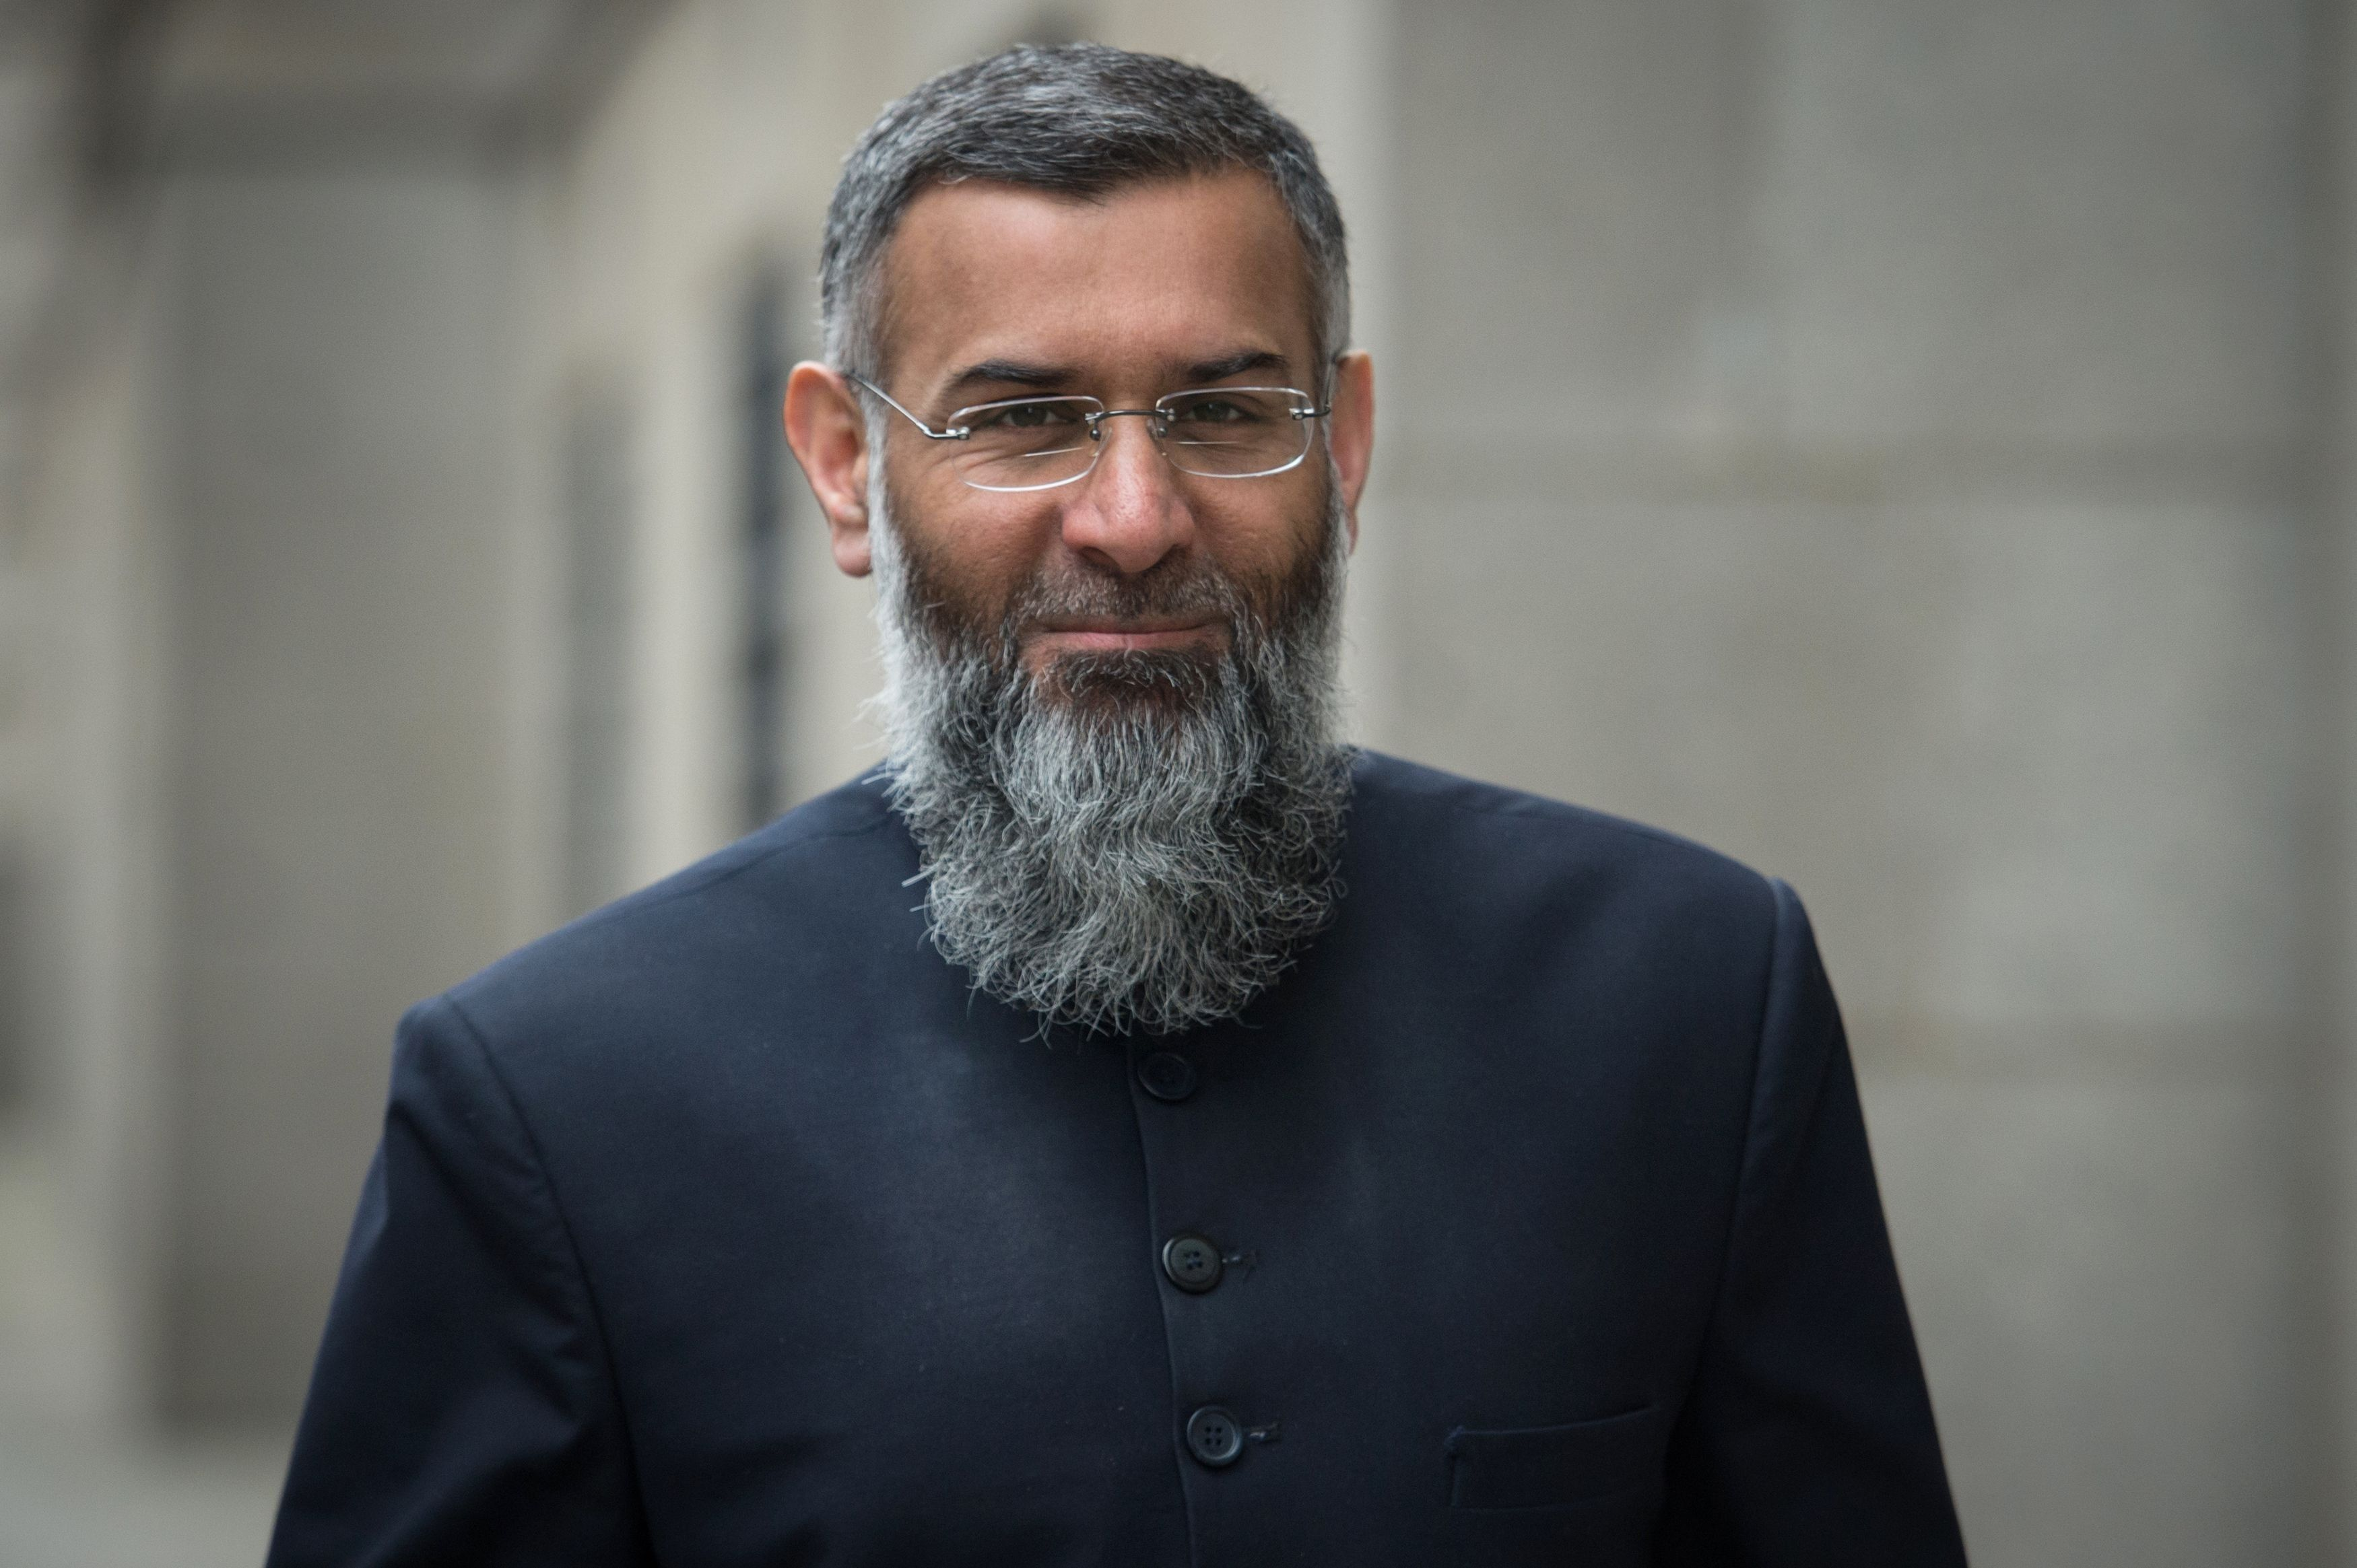 Anjem Choudary outside the Old